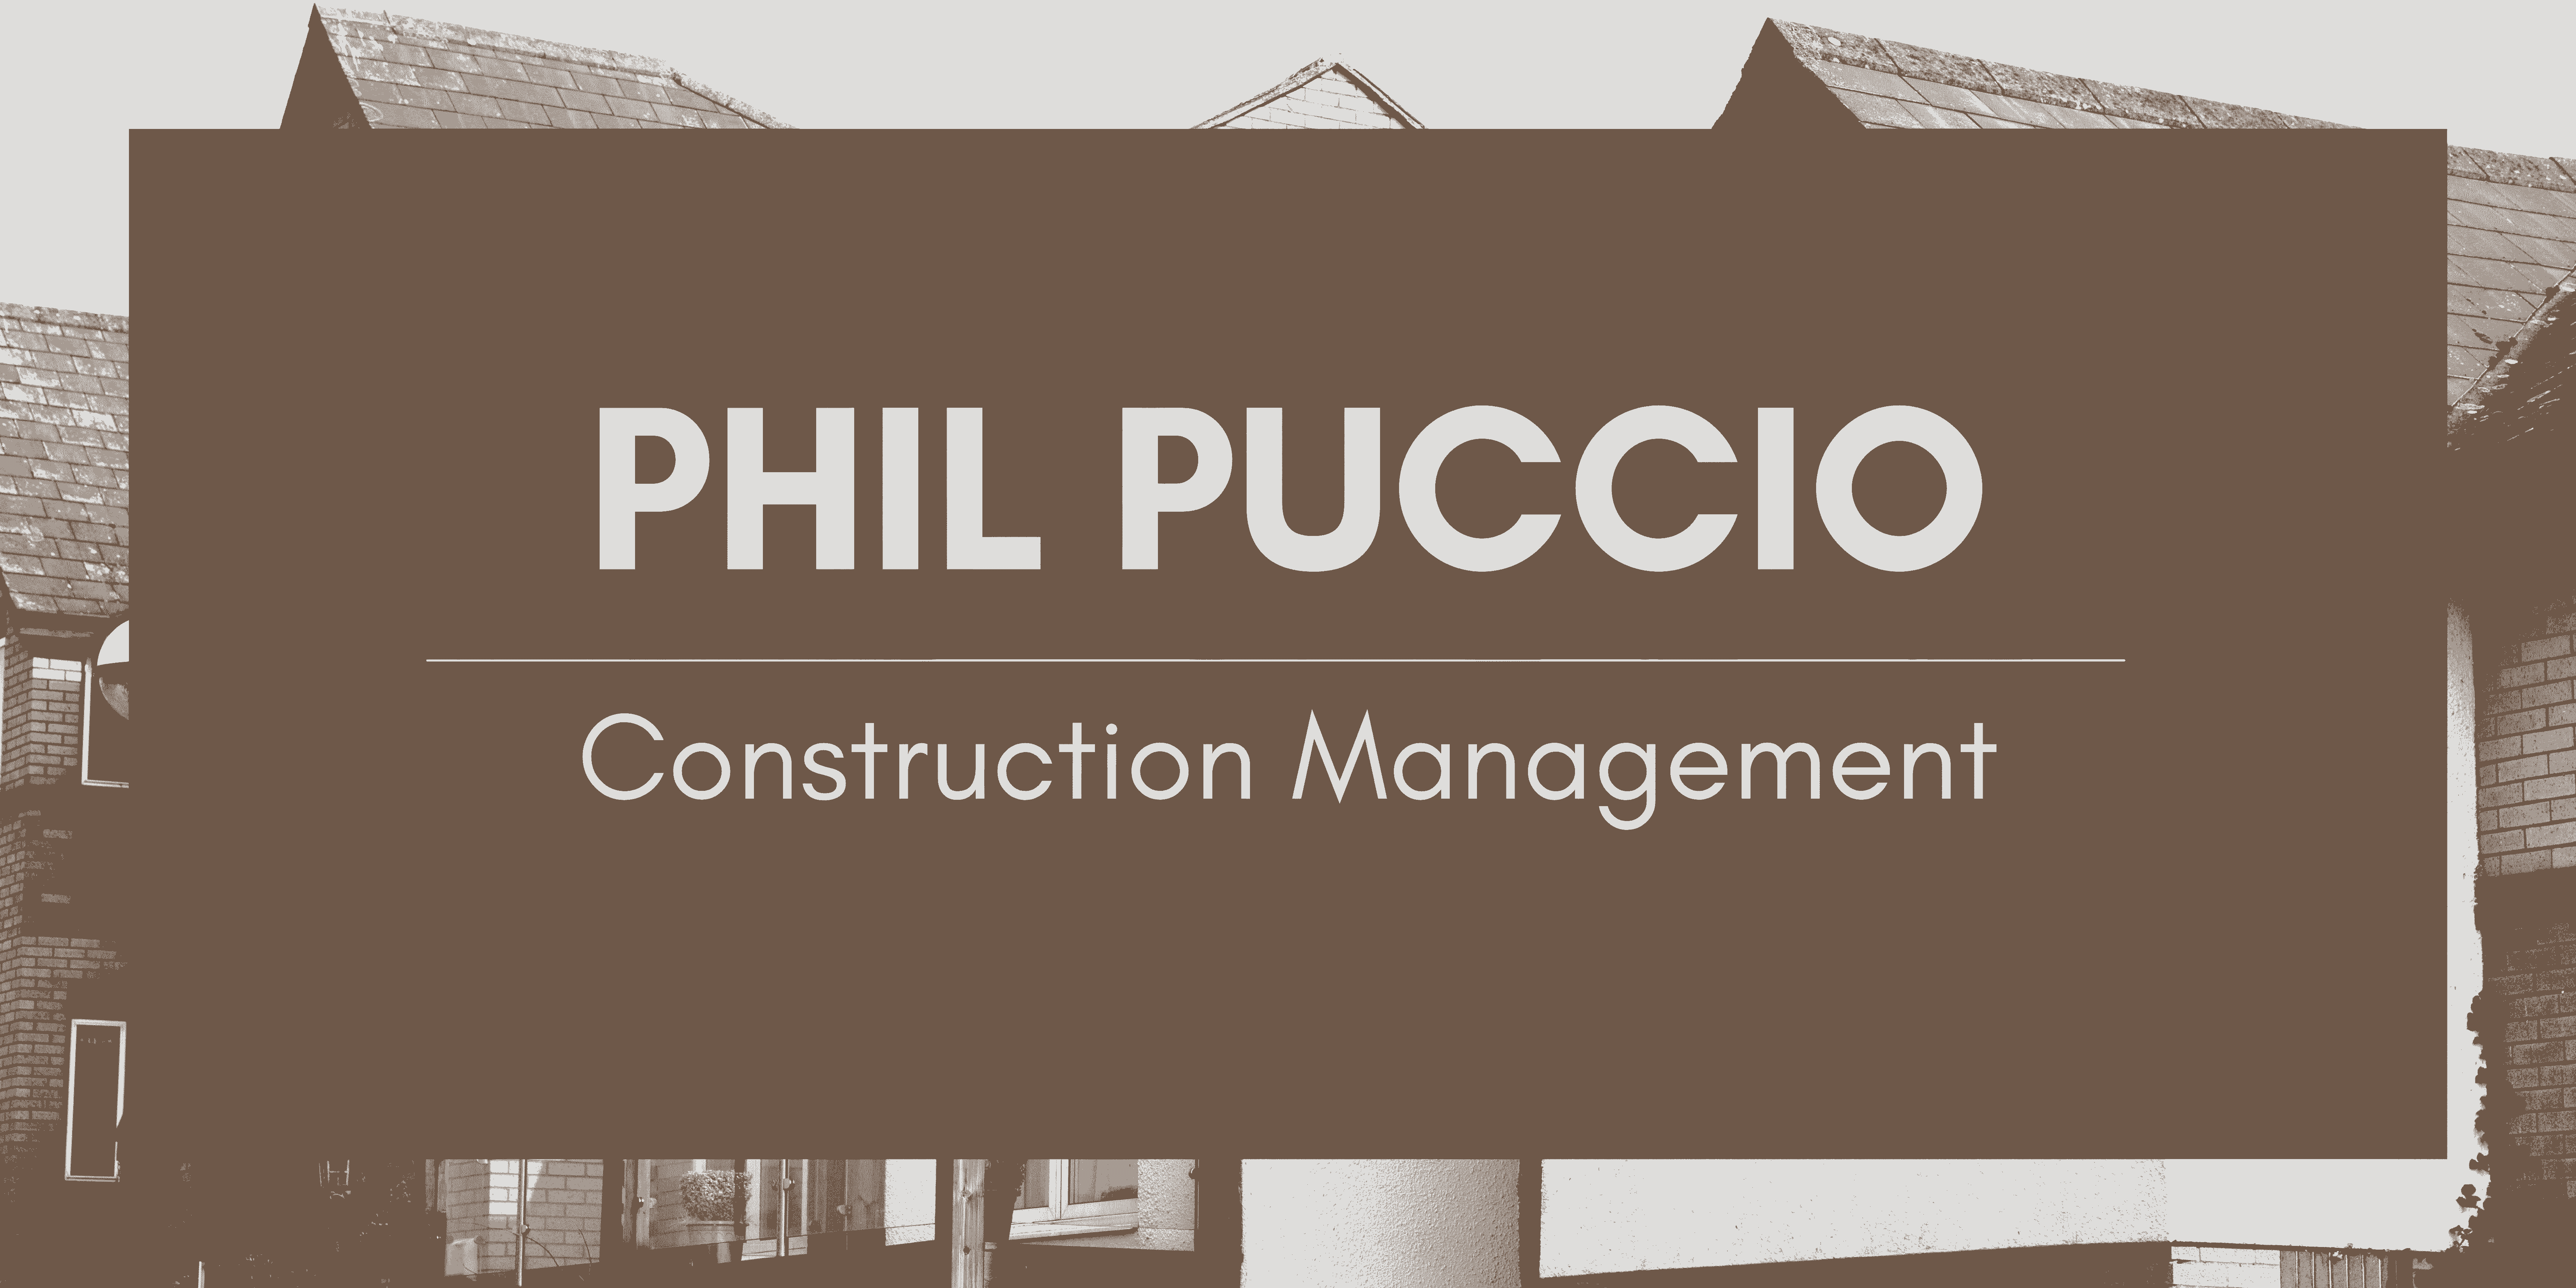 Phil Puccio: Meet The Highly Respected Construction Management Services Expert